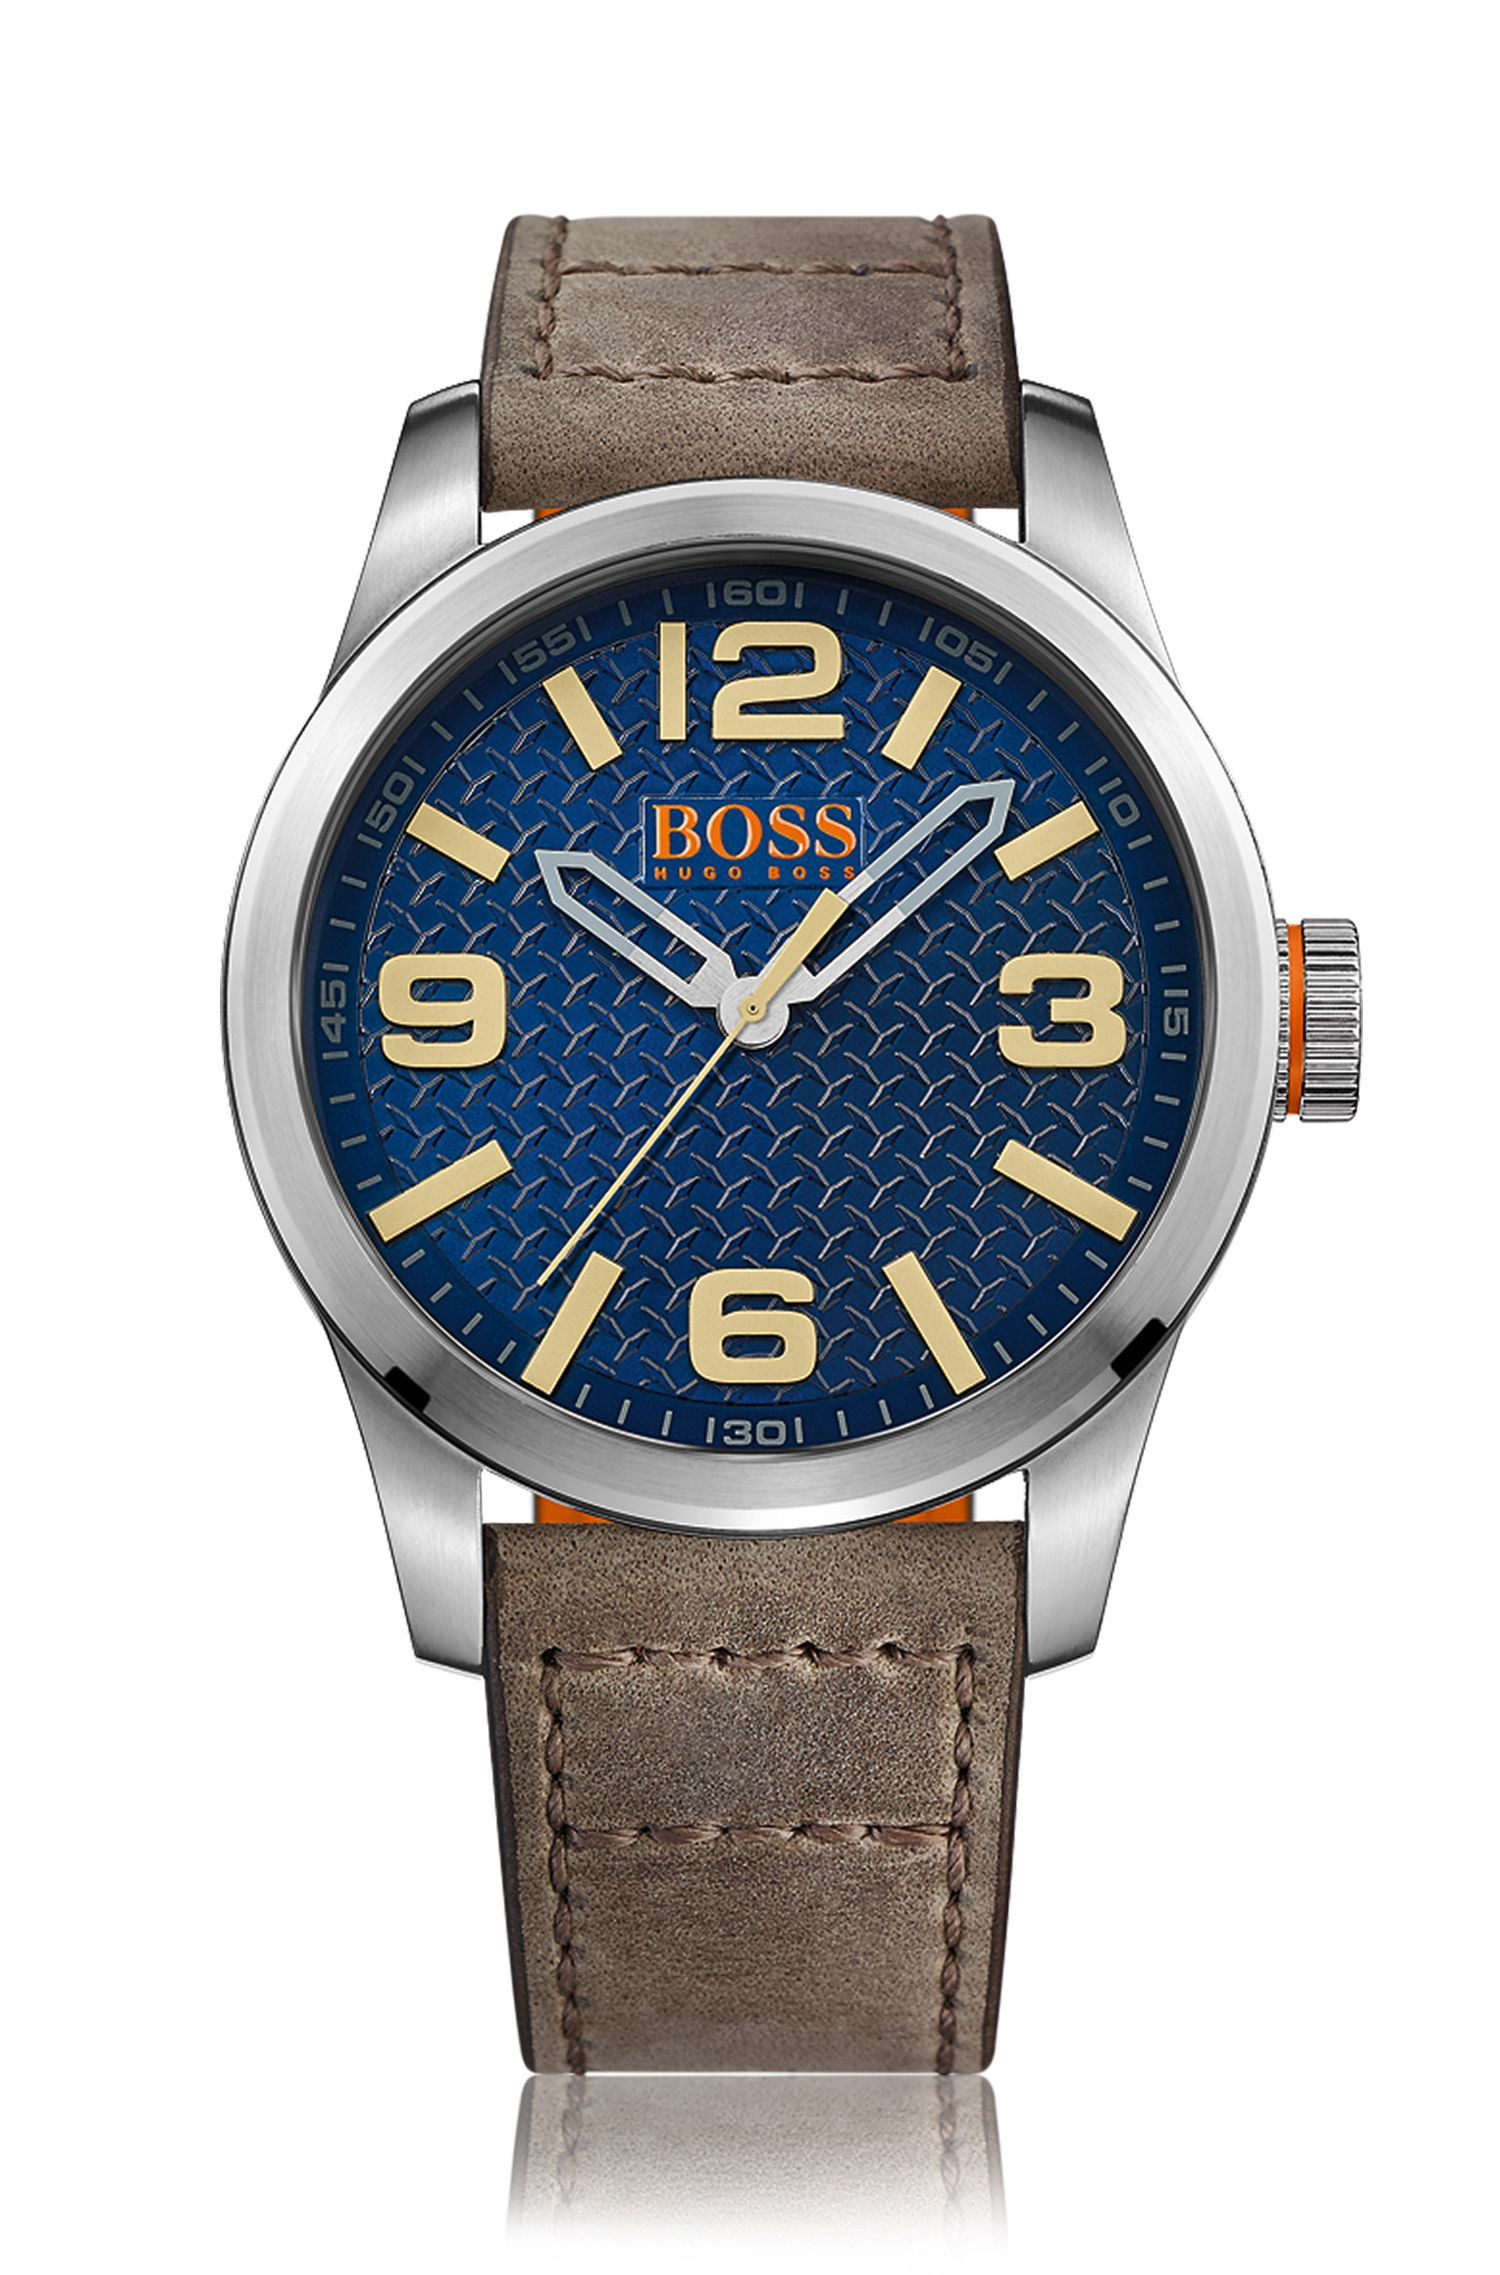 Stainless-steel three-hand watch with blue textured dial and leather strap